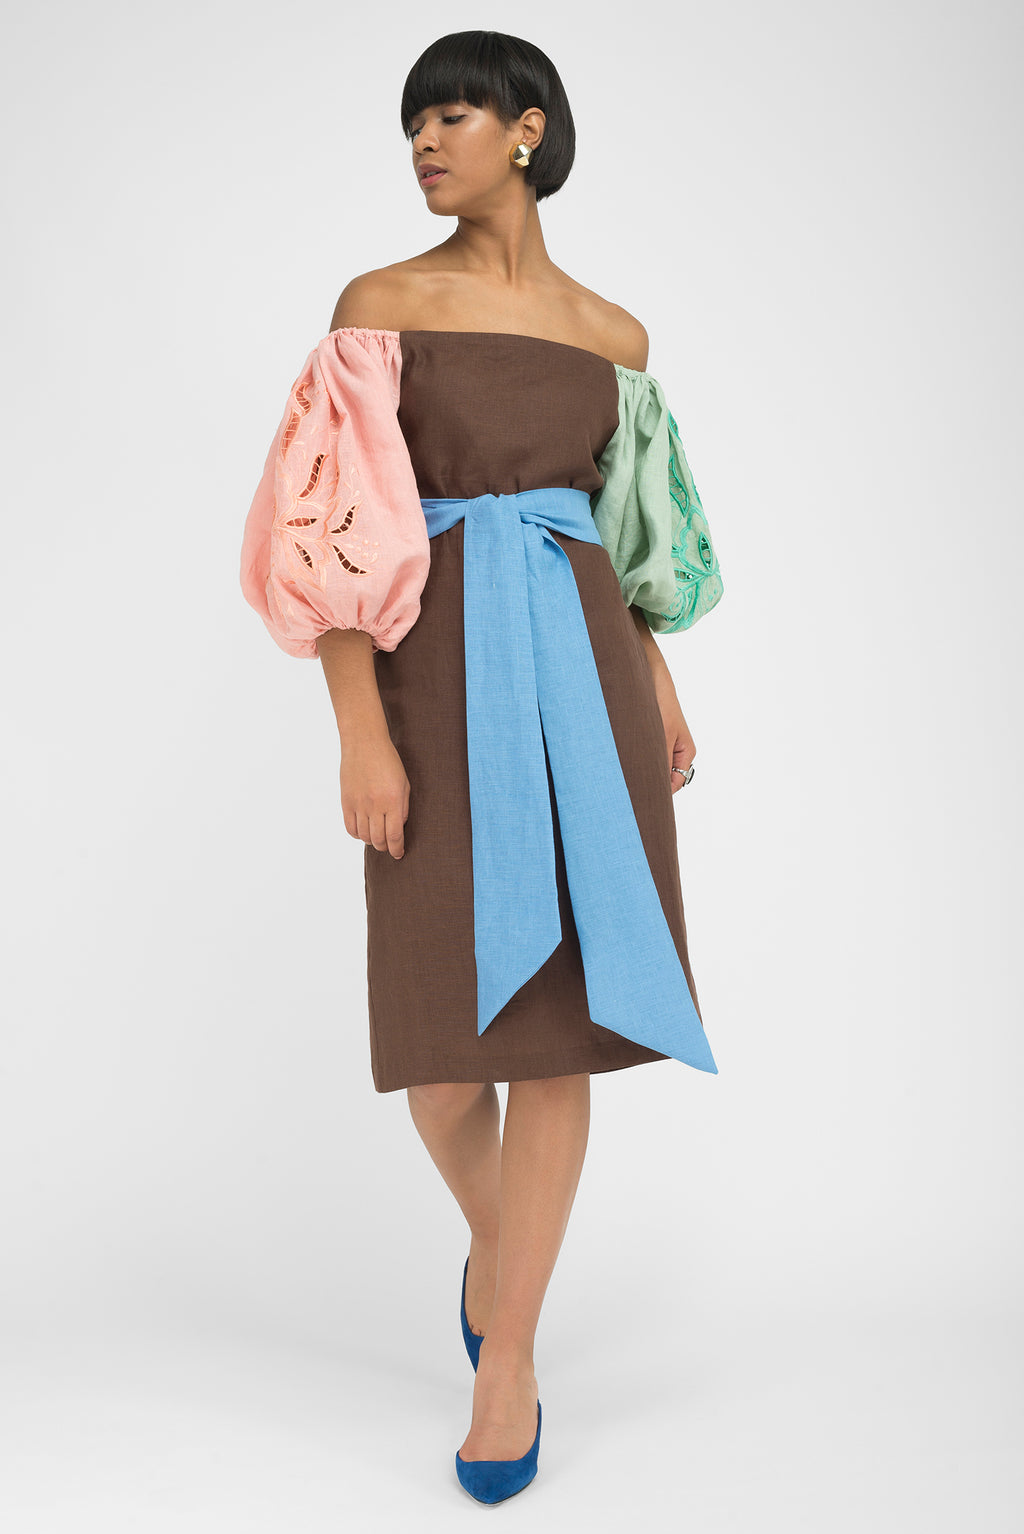 FANM MON YAKA Expresso Linen 2 Colored Embroidered Sleeves With Bow Tie Dress